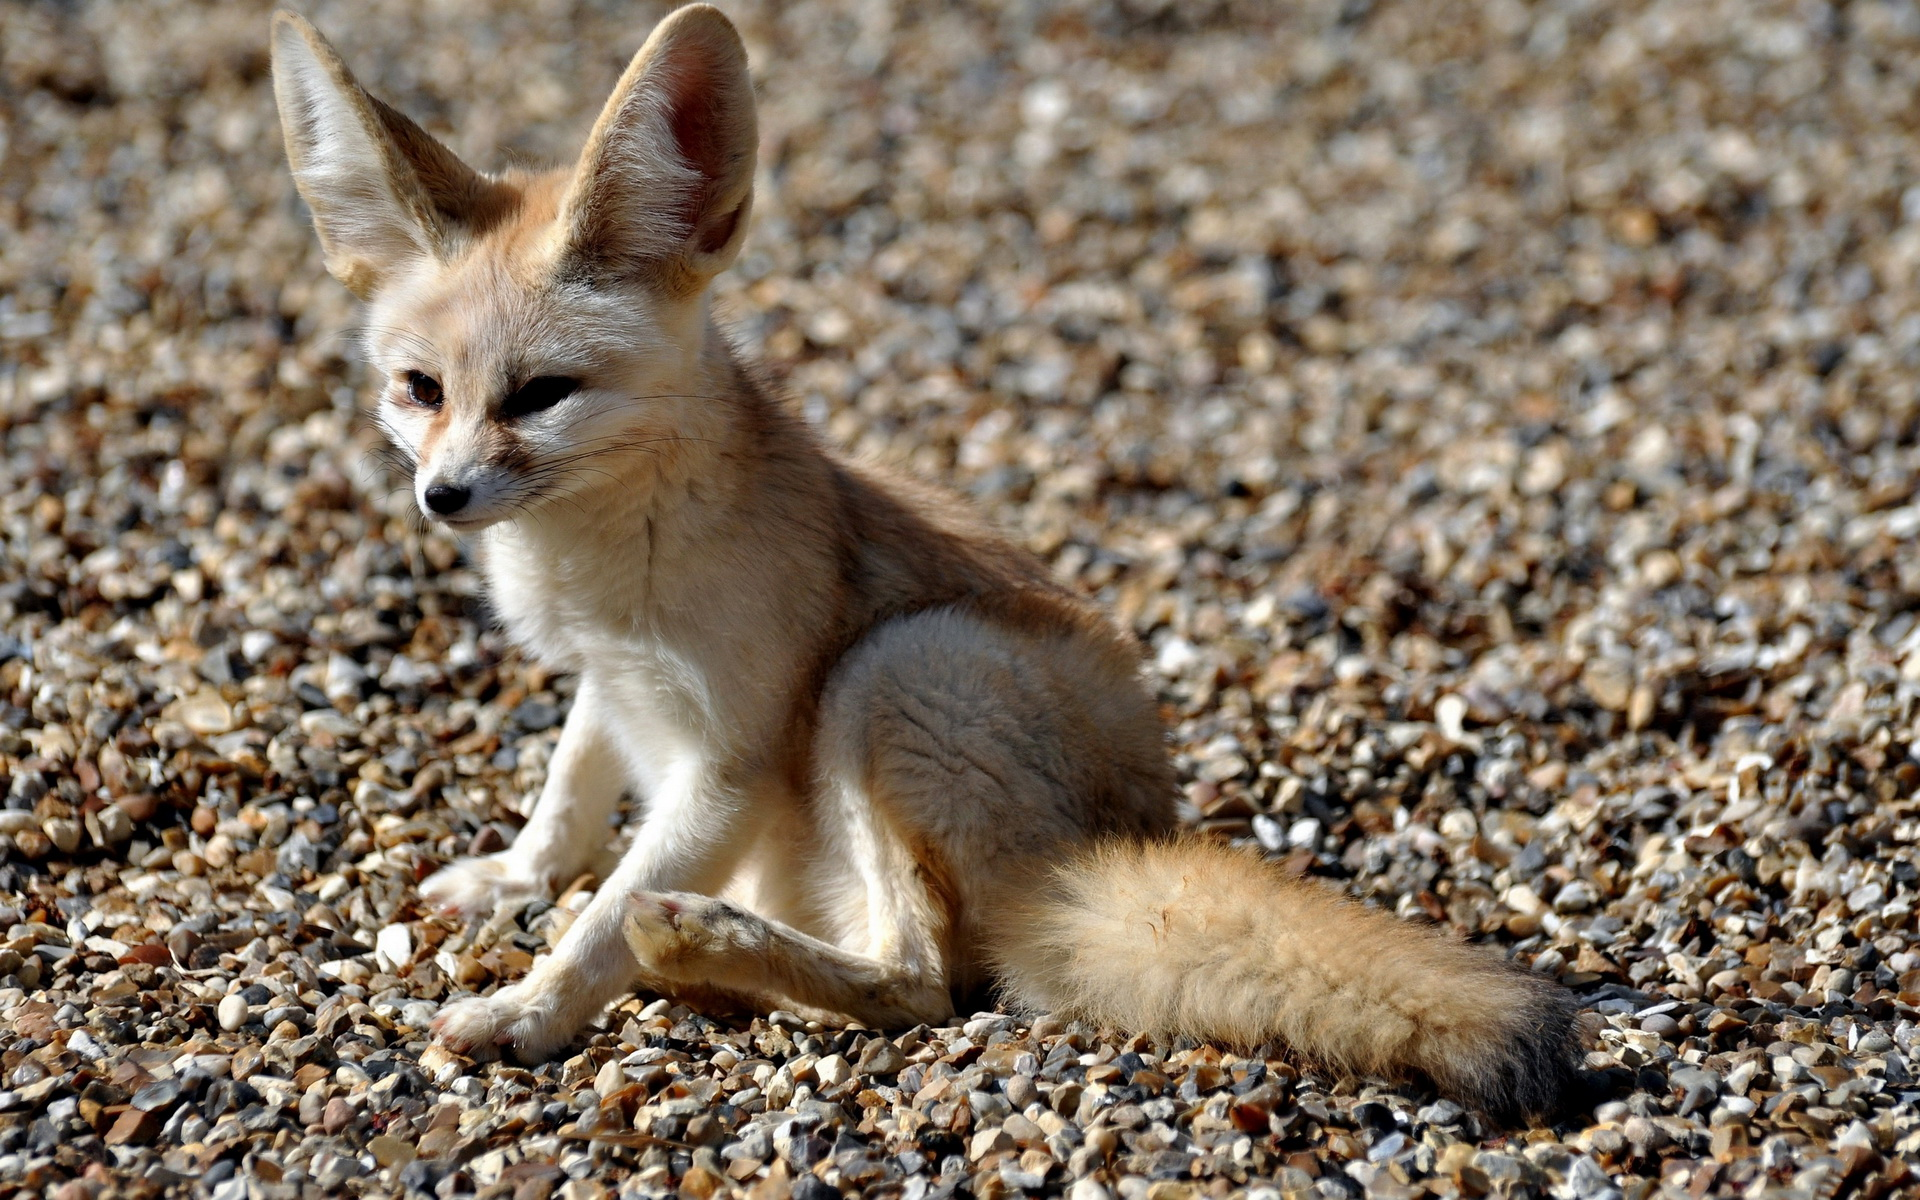 Cute Baby Hd Wallpaper For Laptop 13 Excellent Hd Fennec Fox Wallpapers